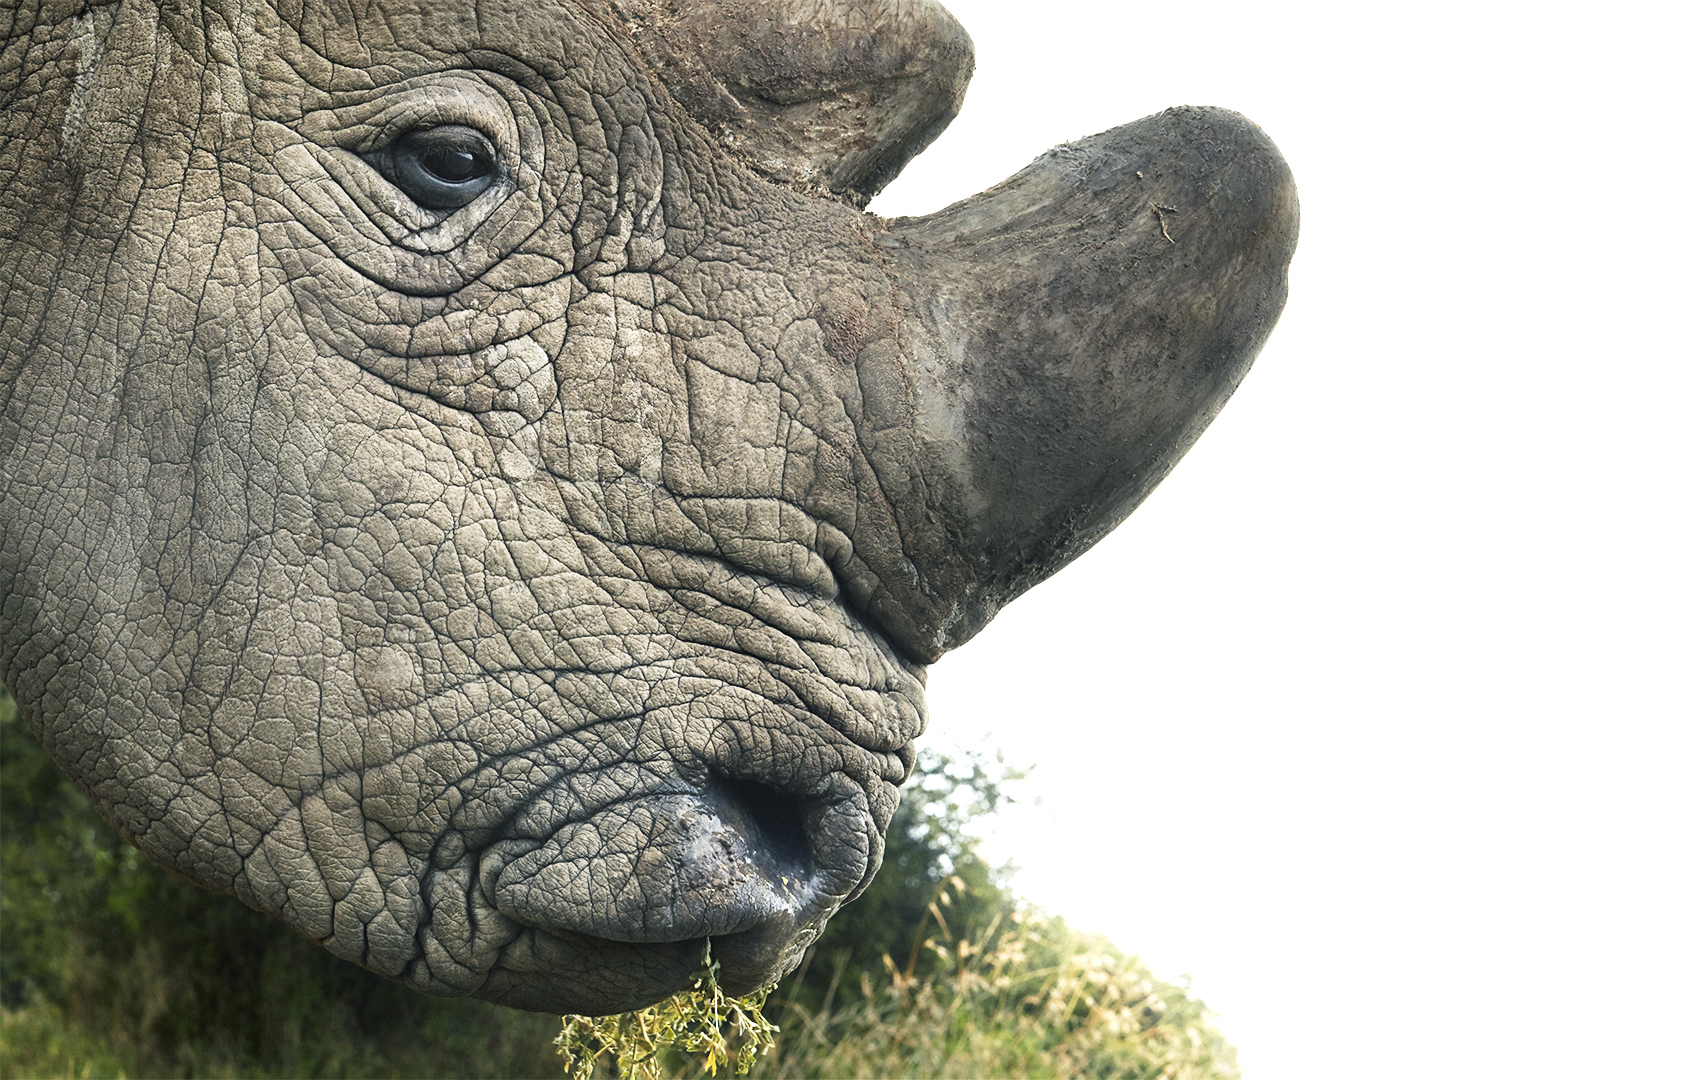 Stunning Photos Of Animals On The Brink Of Extinction Because Of Humans Northern White Rhinoceros Closeup Portrait copy